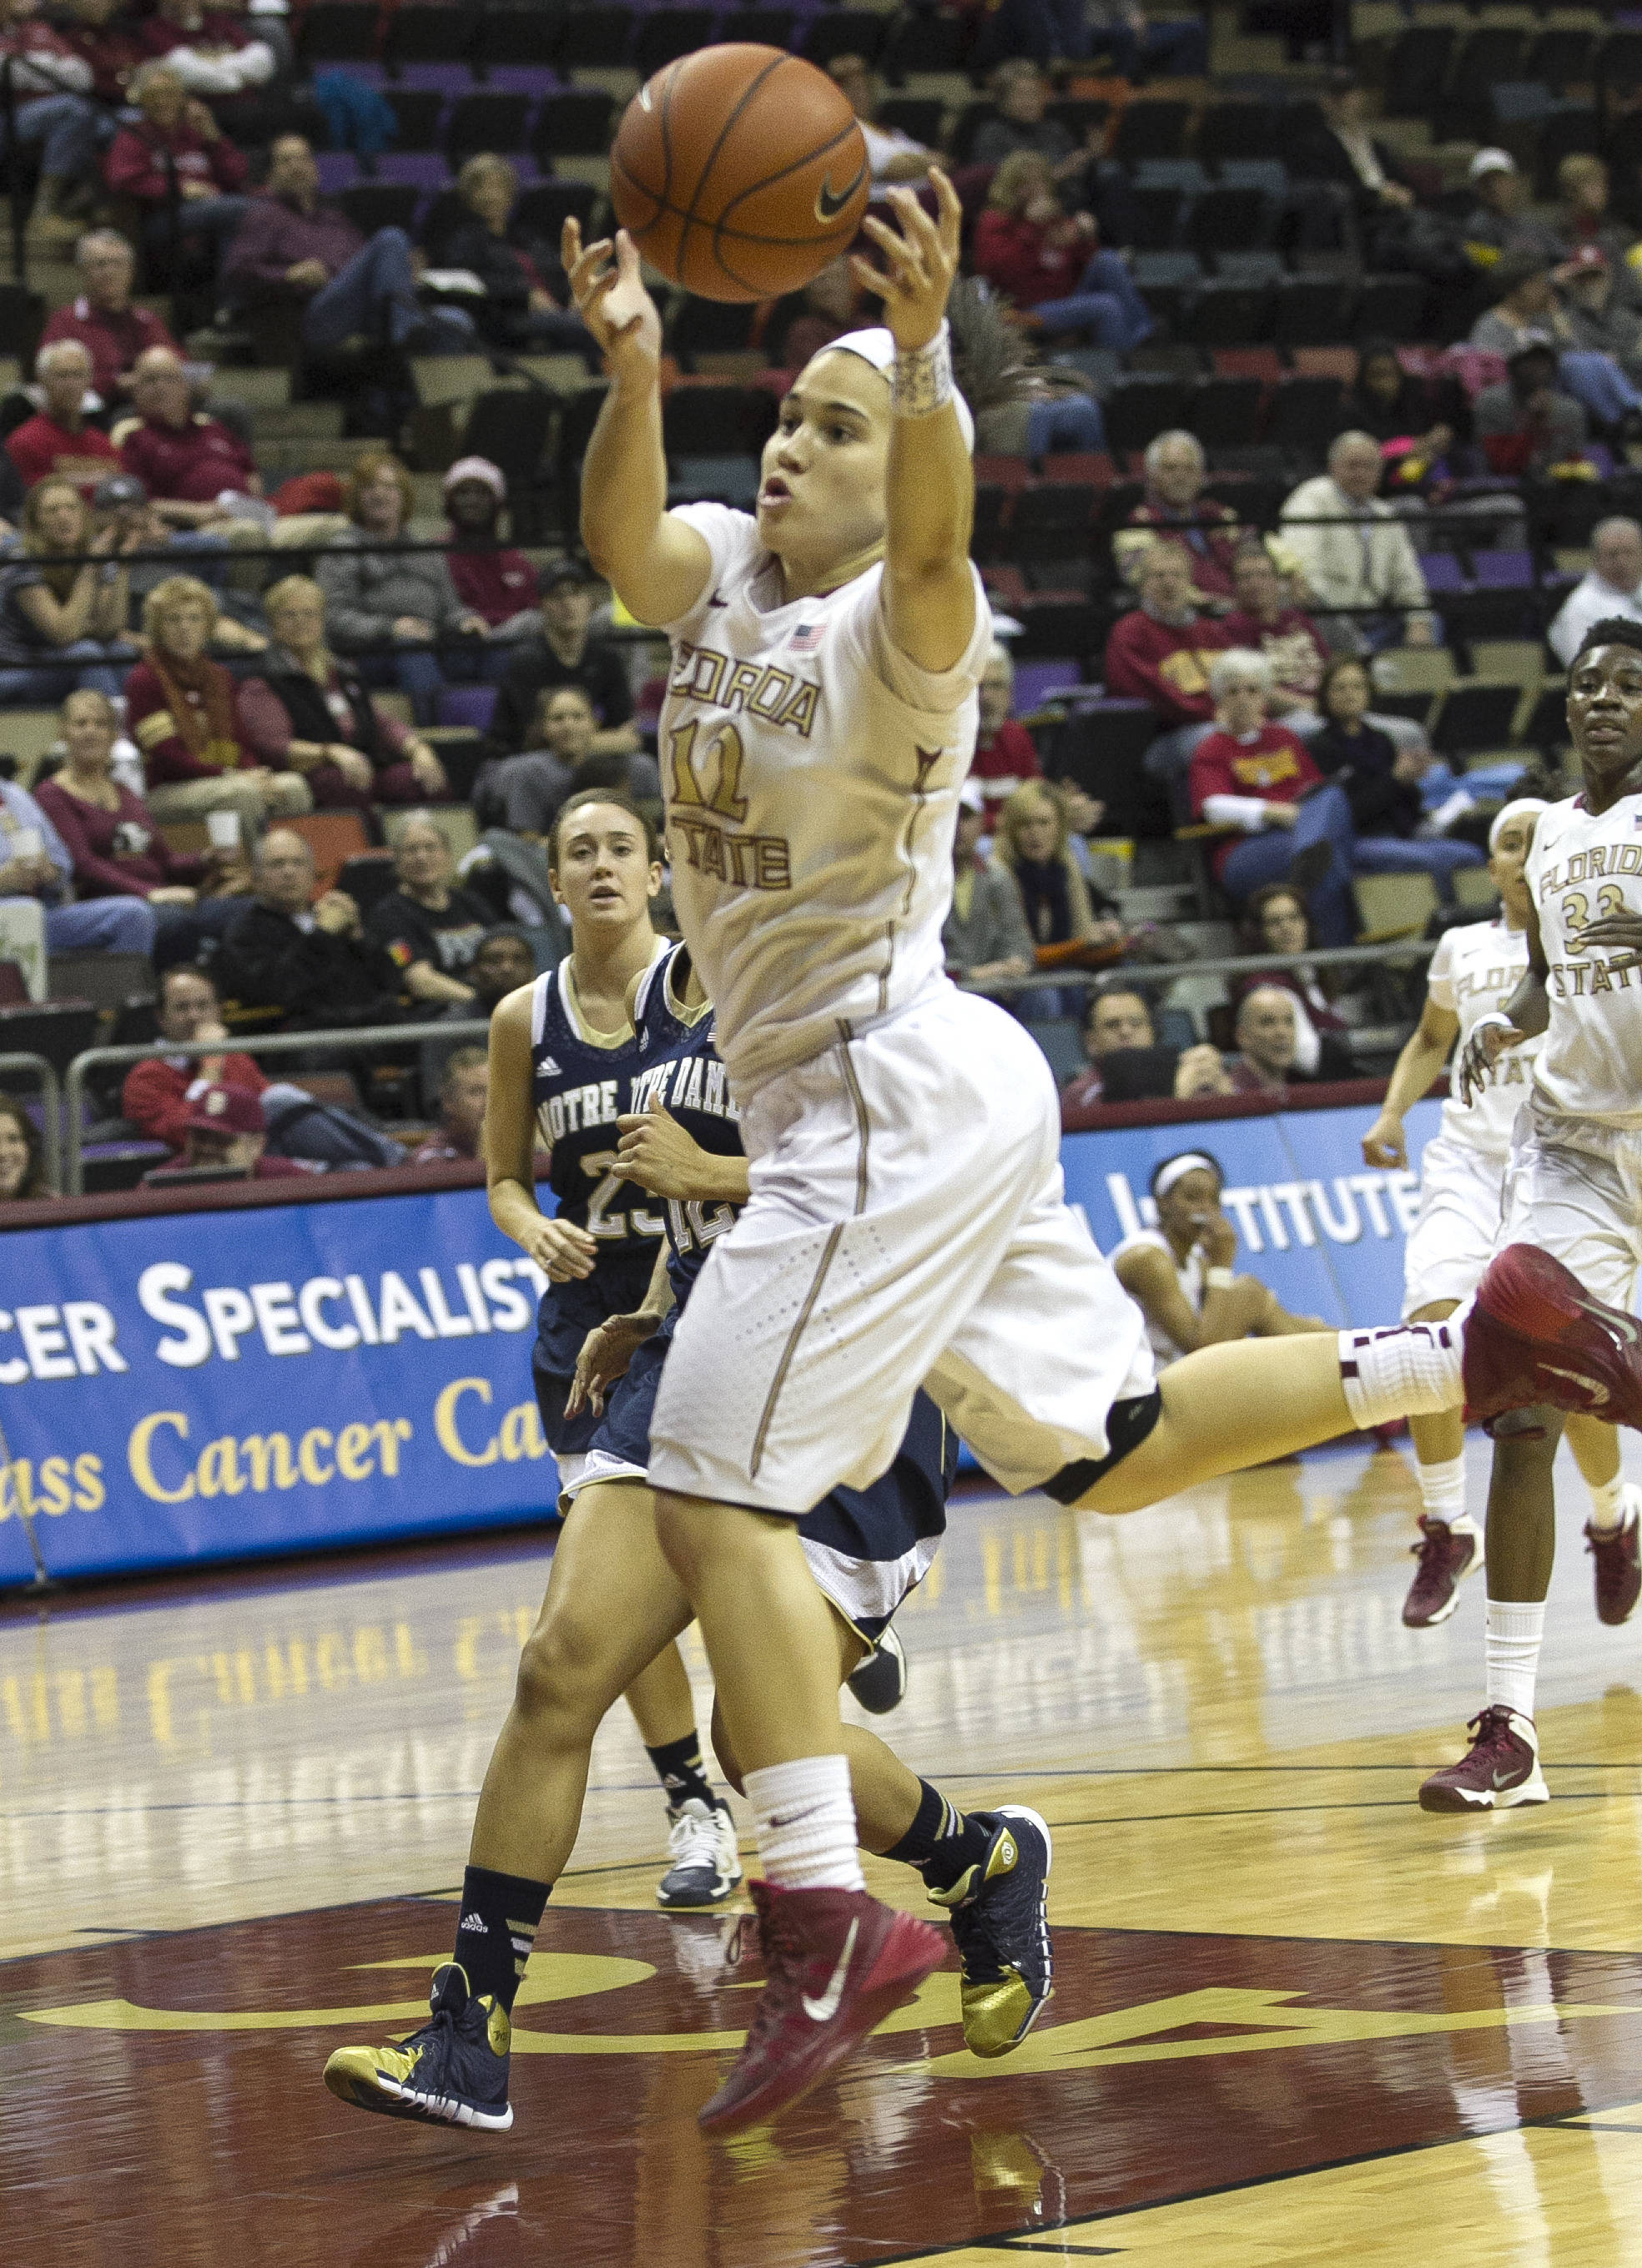 Brittany Brown (12) reaches high to keep a ball inbounds, FSU vs Notre Dame, 2-06-14, (Photo's by Steve Musco)